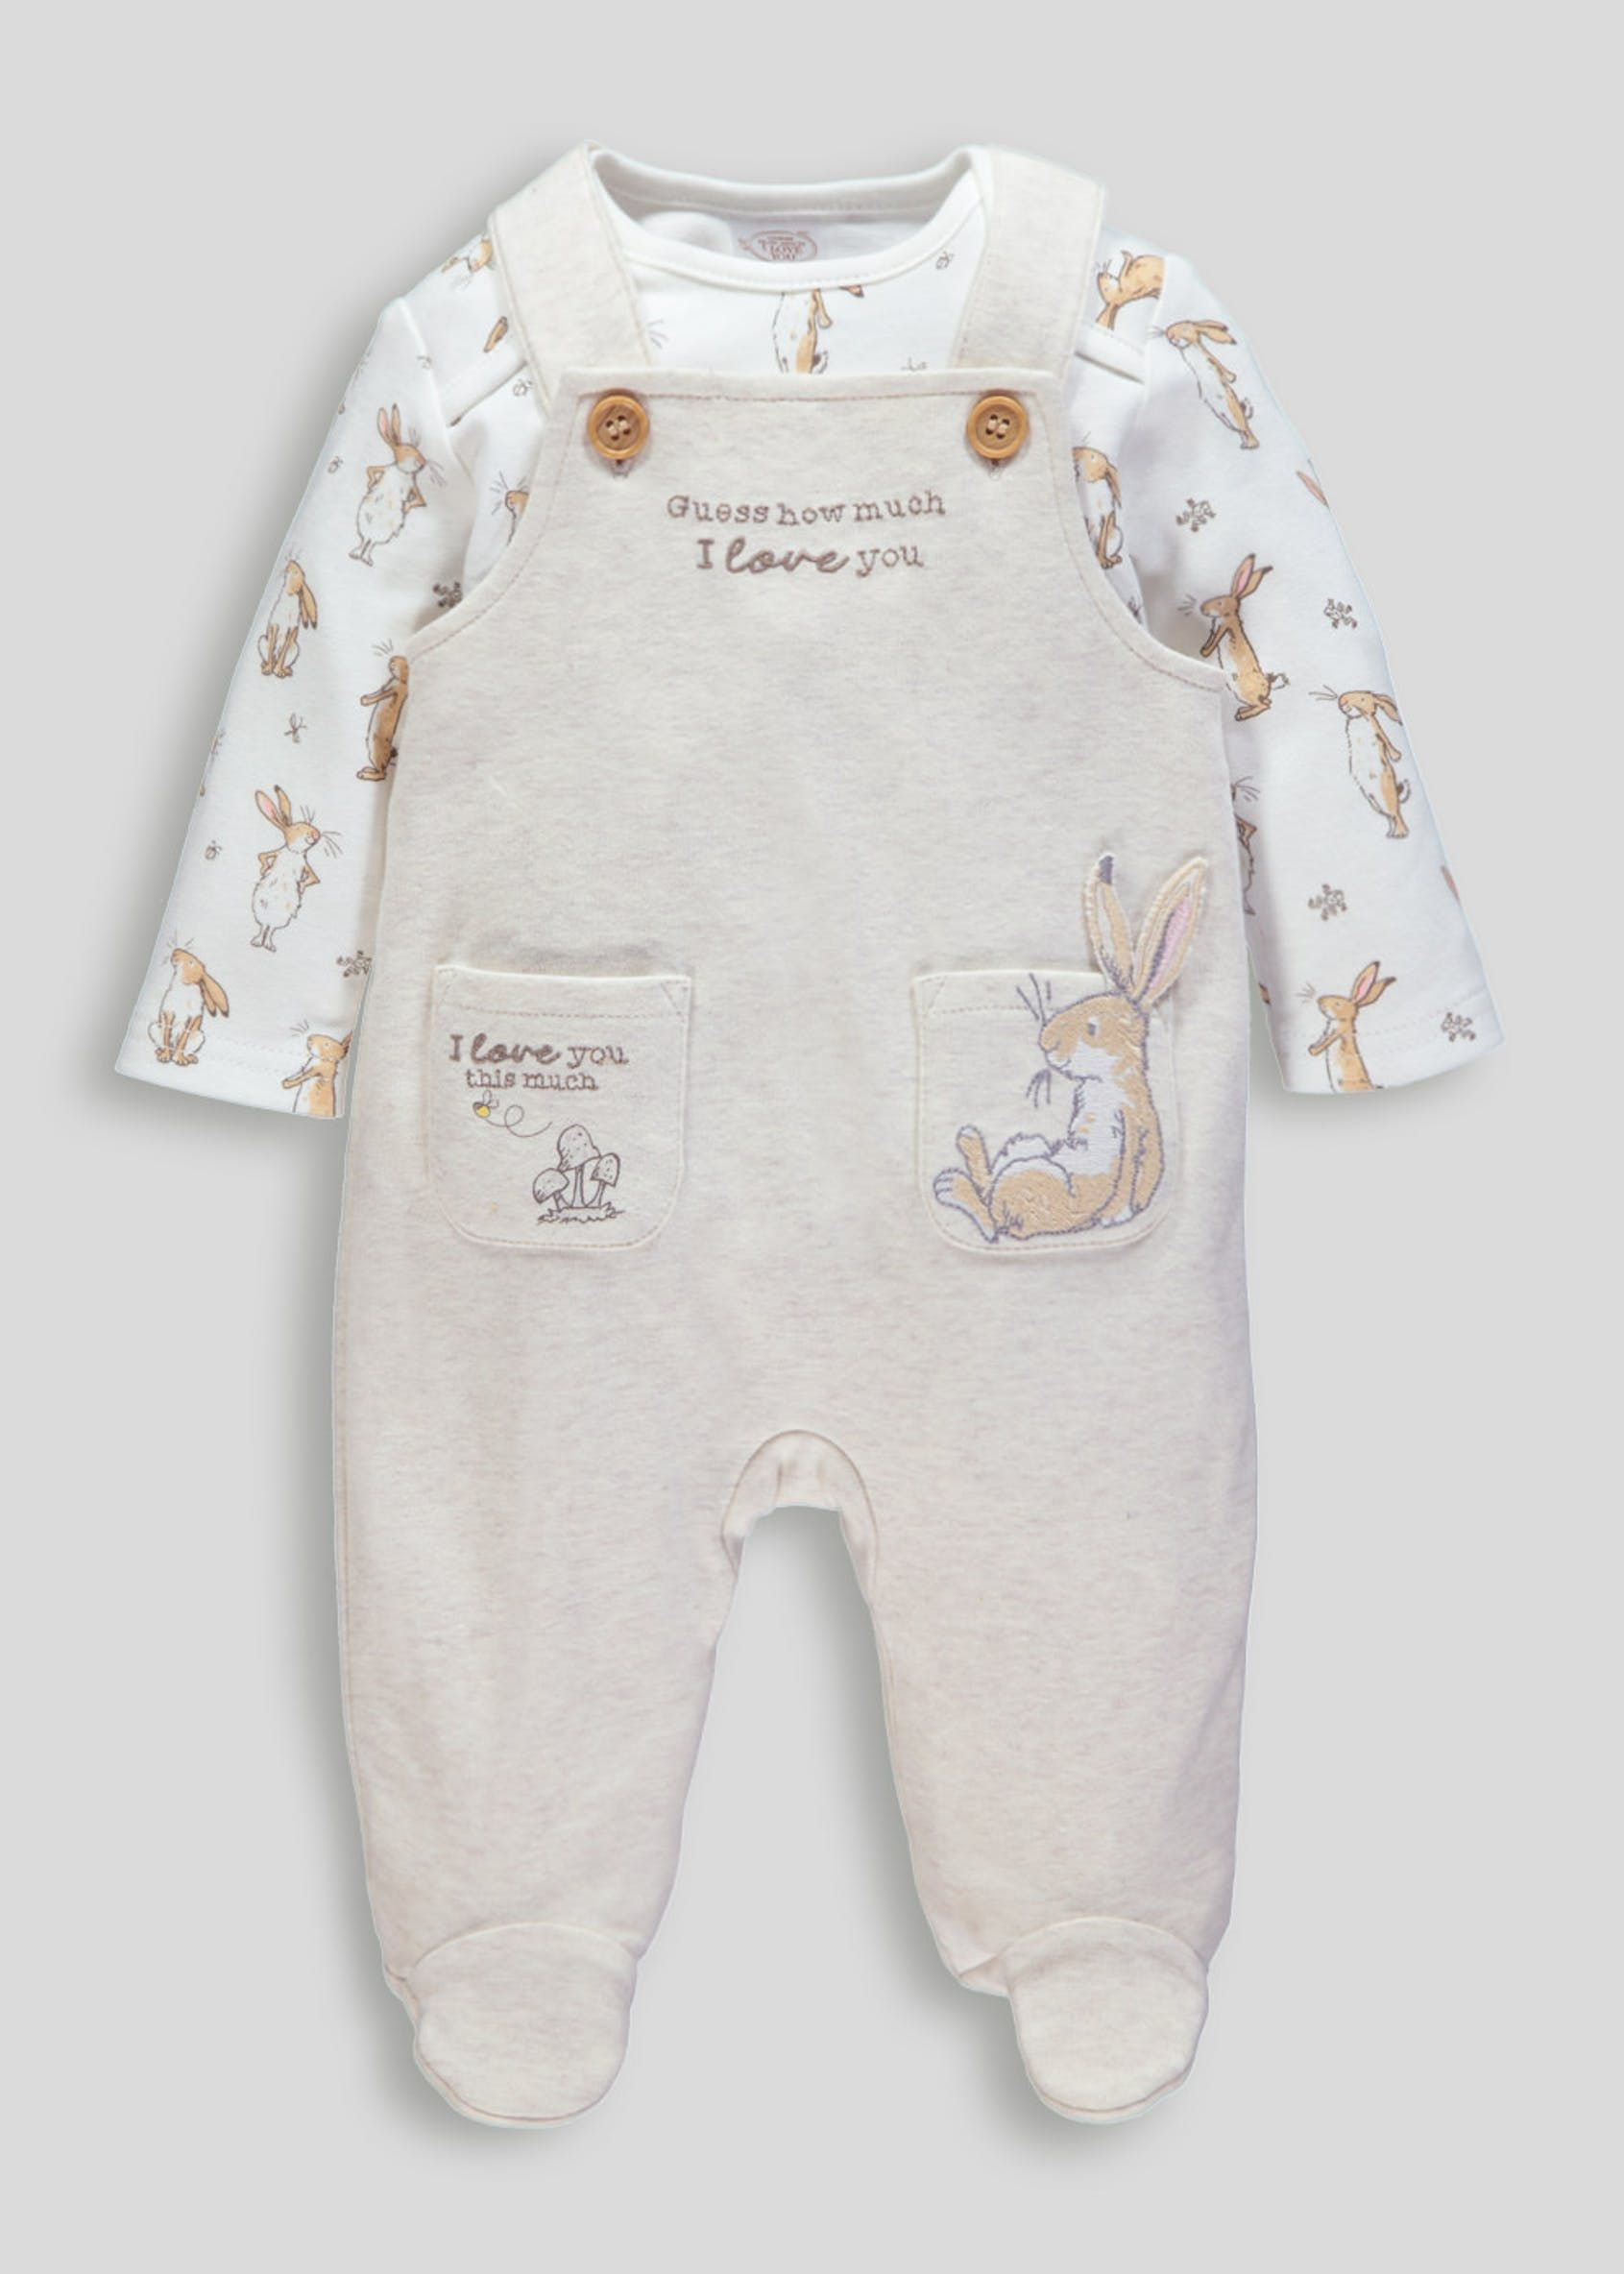 factory outlet super quality promo codes Unisex Guess How Much I Love You Dungarees & Bodysuit ...